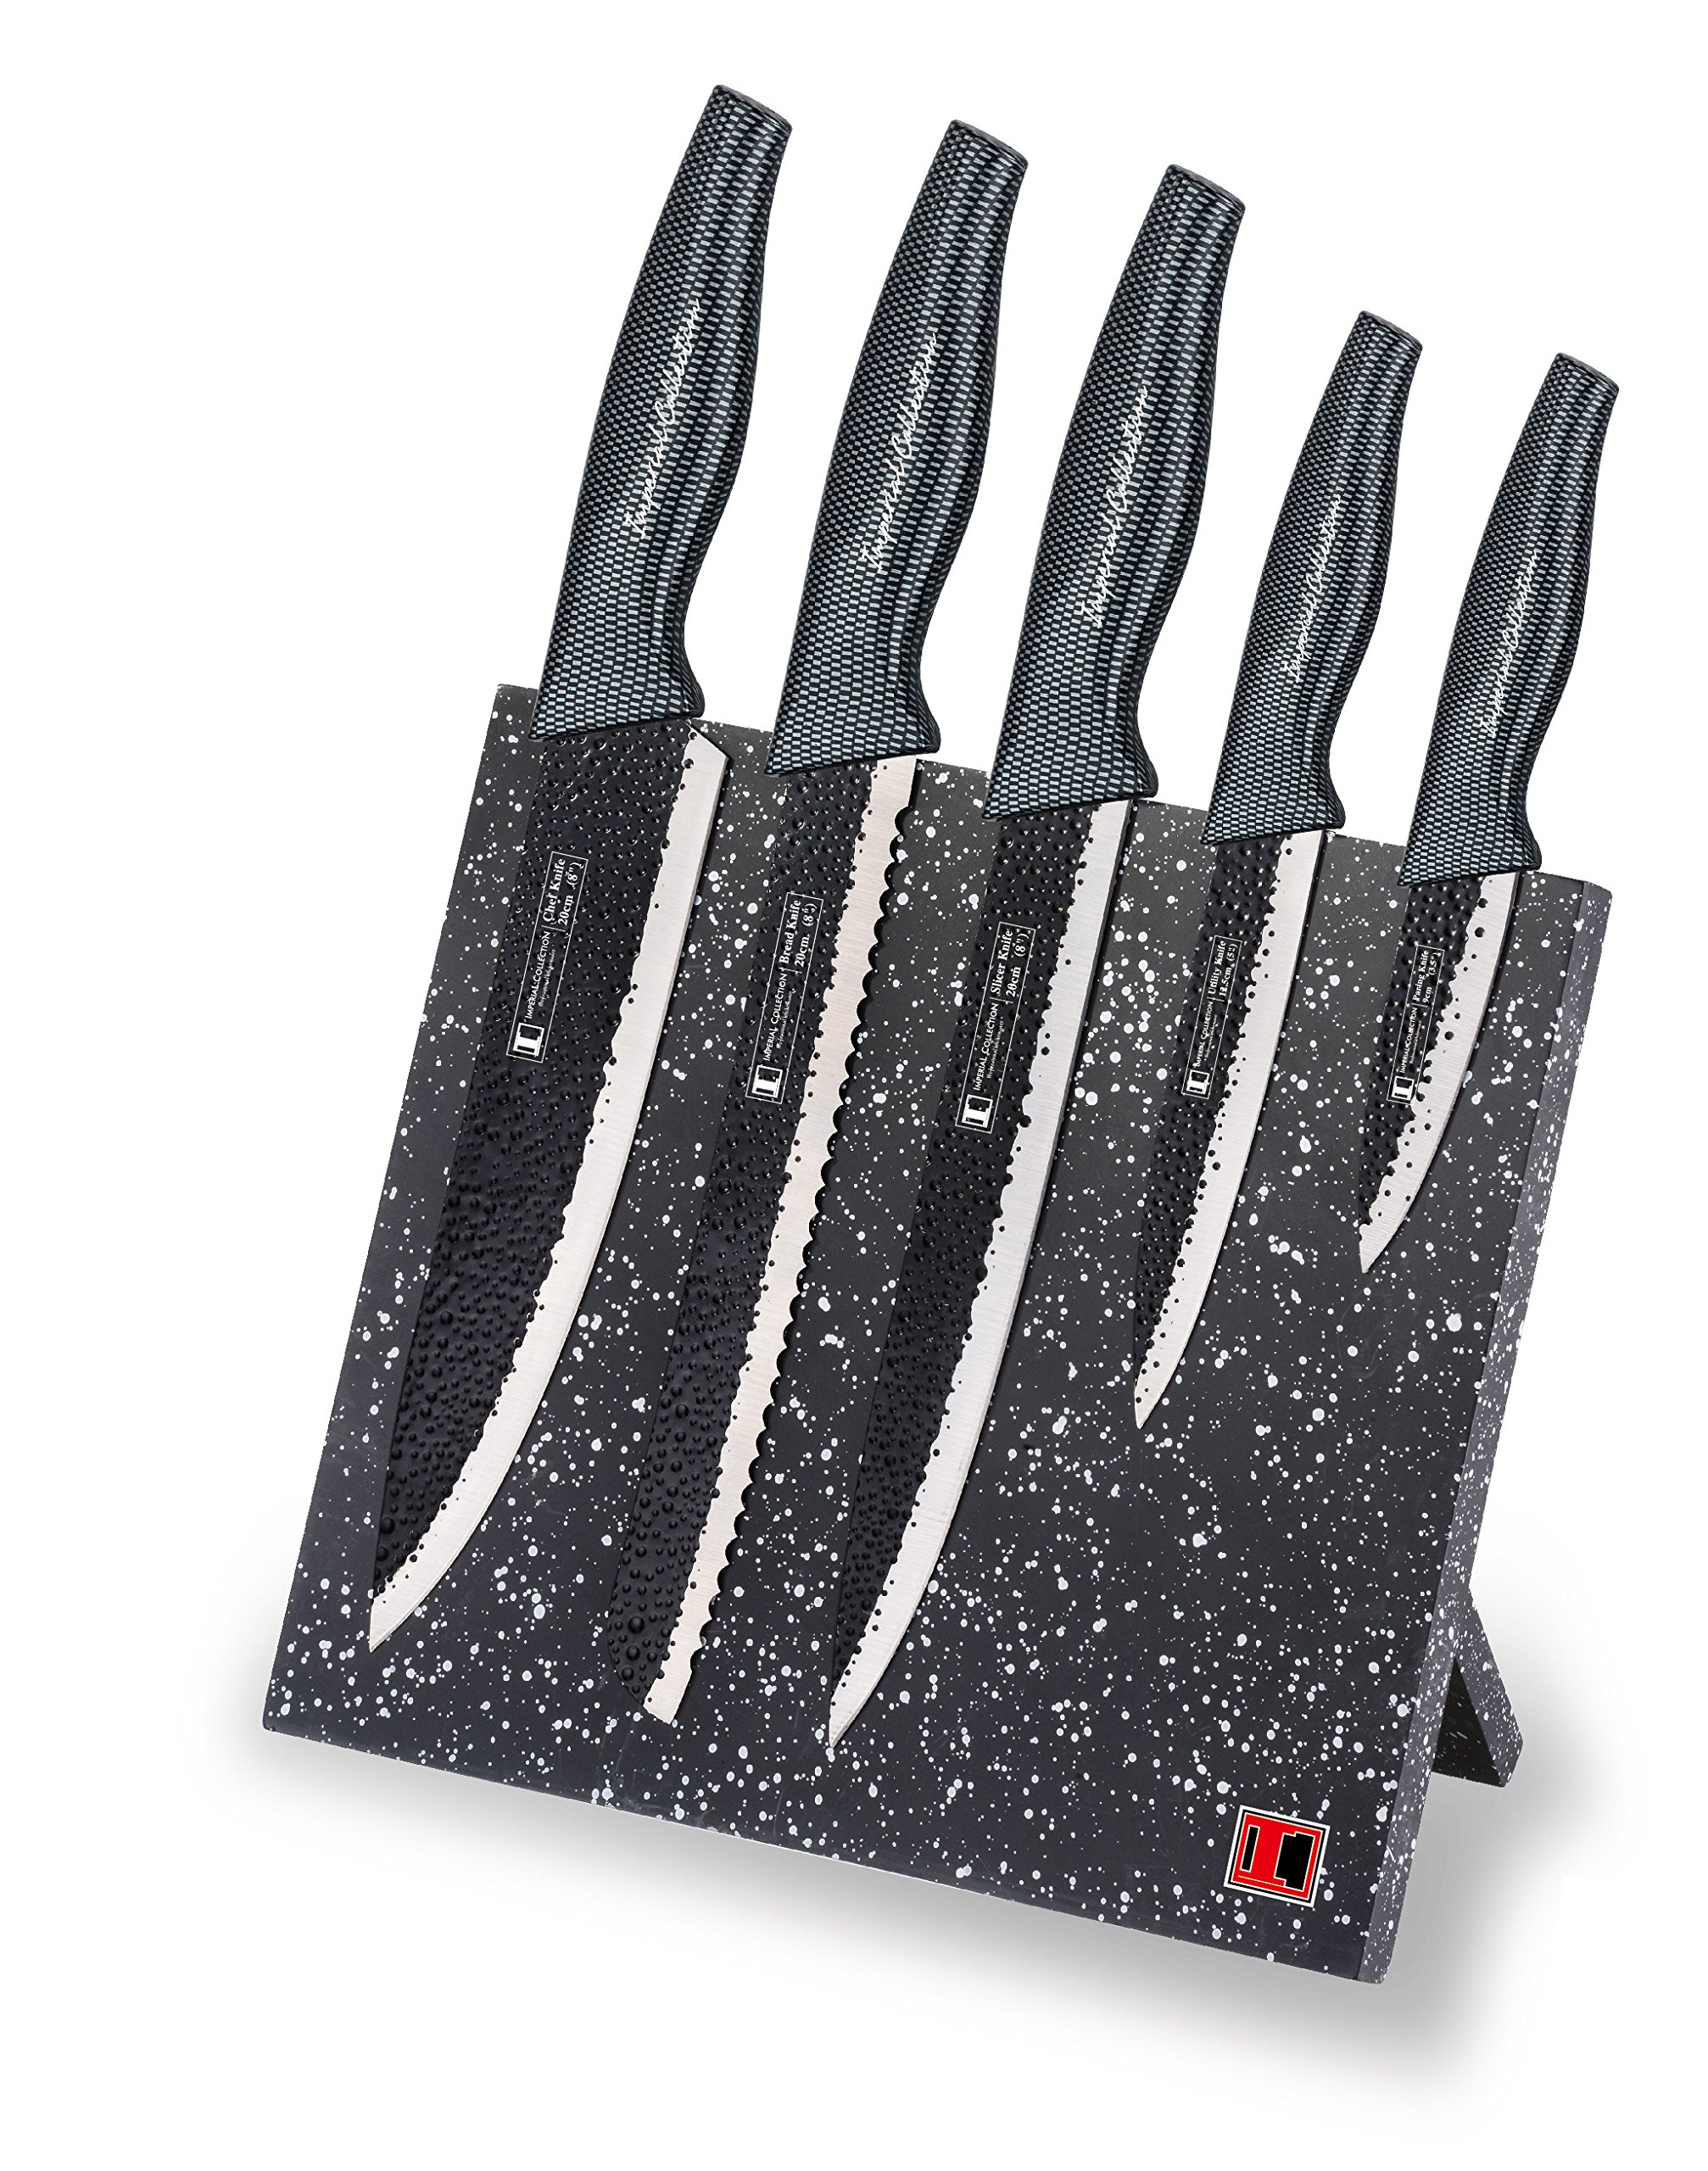 Imperial Collection IM-MGN5-CB Stainless Steel Knife Set with Magnetic Knife Block Featuring Embossed Blades with Non-Stick Coating, Ergonomic Soft Grip (6-Piece Set of Knives, Carbon Fiber Handles)